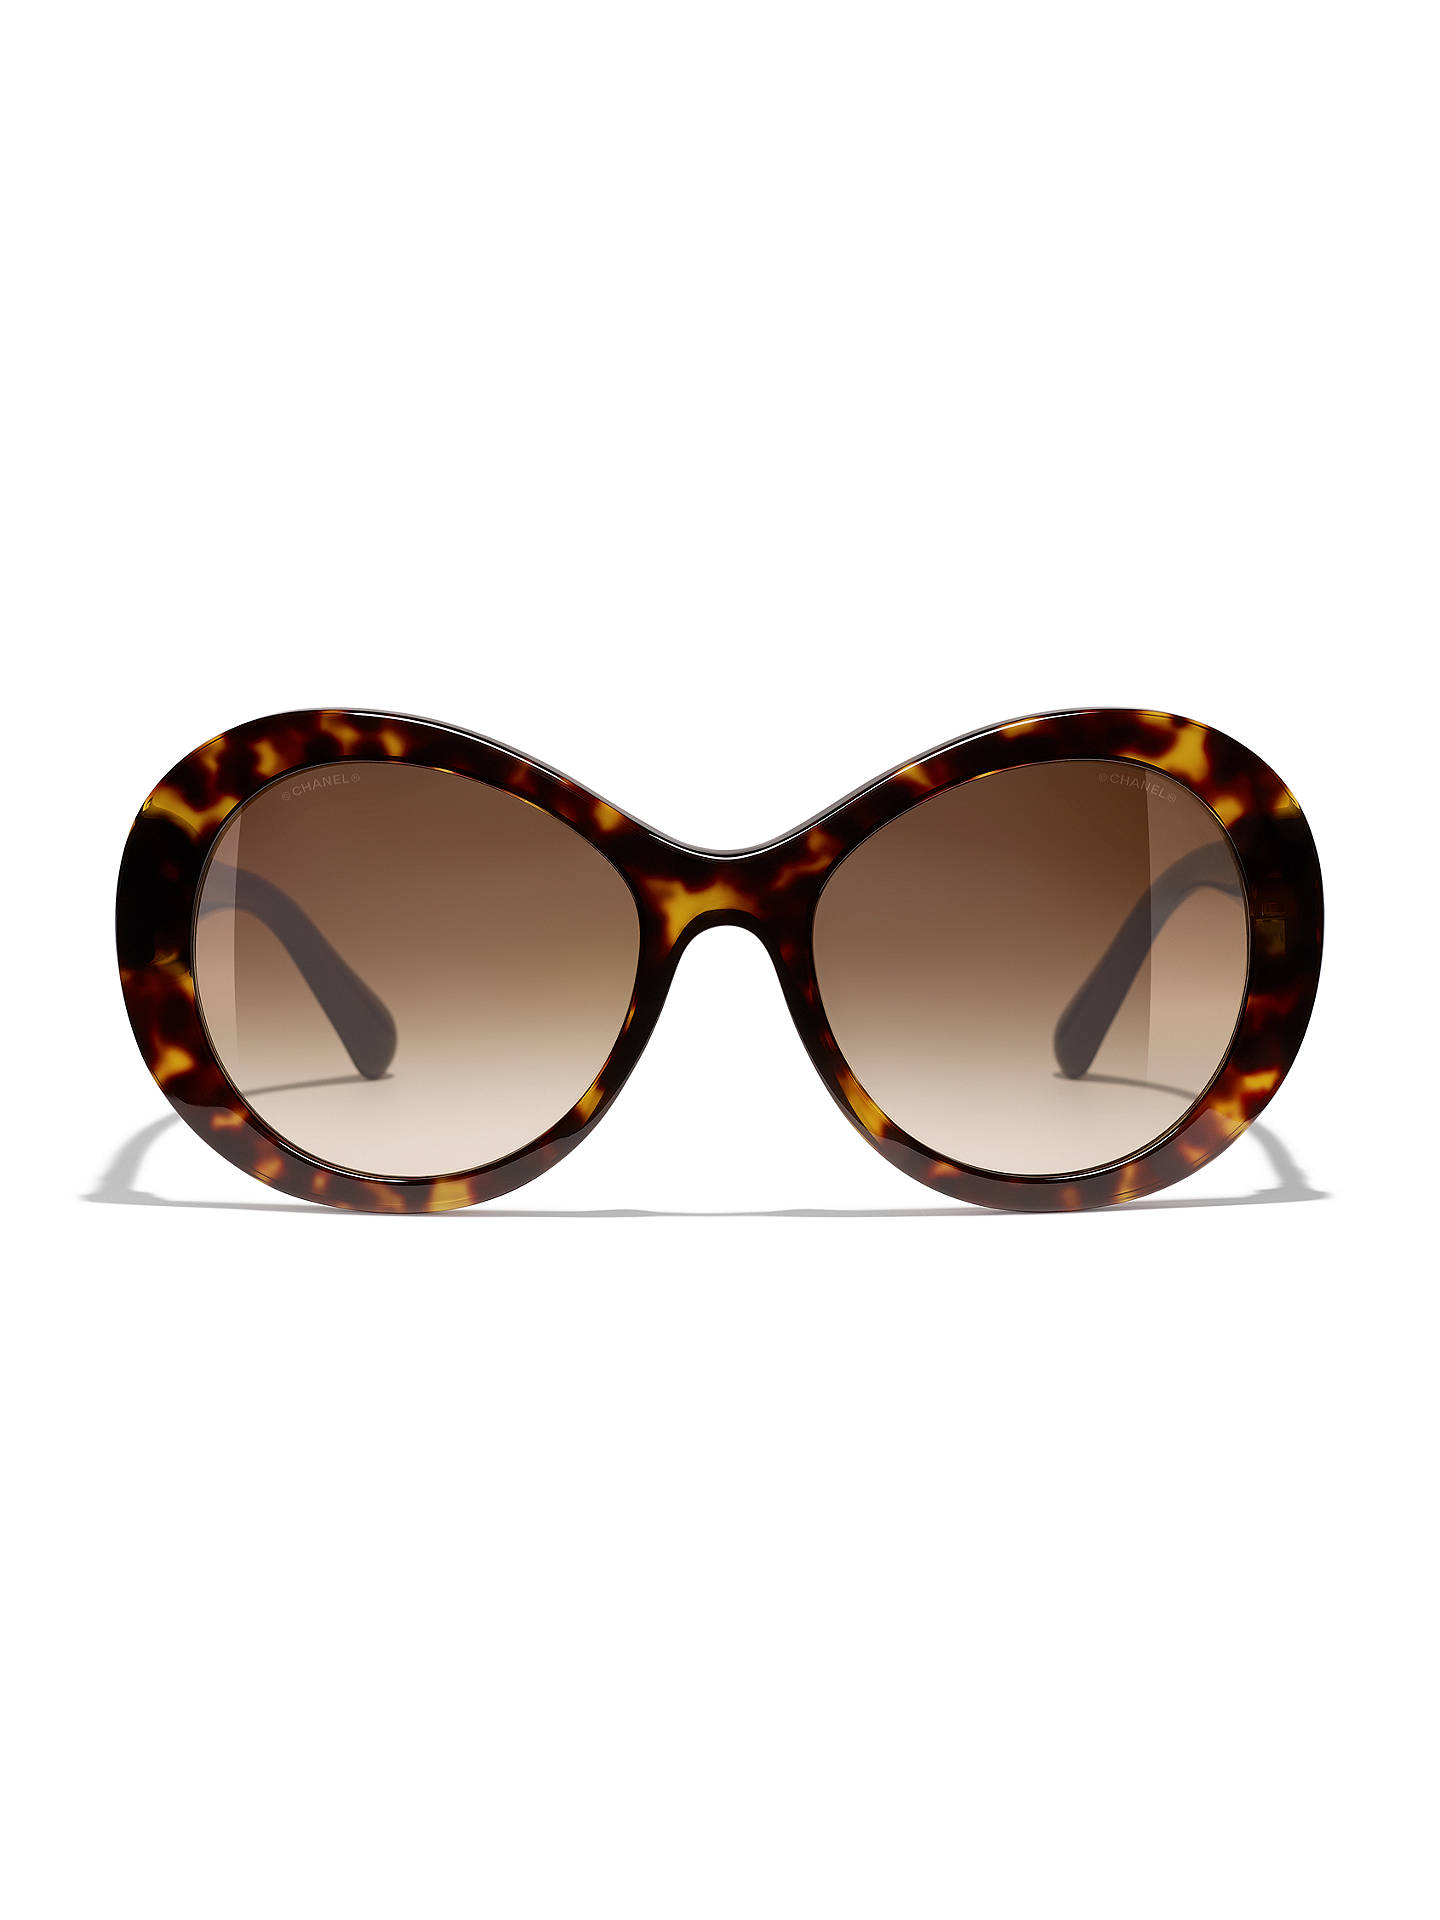 59efbe6d1b8a ... Buy CHANEL Oval Sunglasses CH5372 Tortoise Brown Gradient Online at  johnlewis.com ...